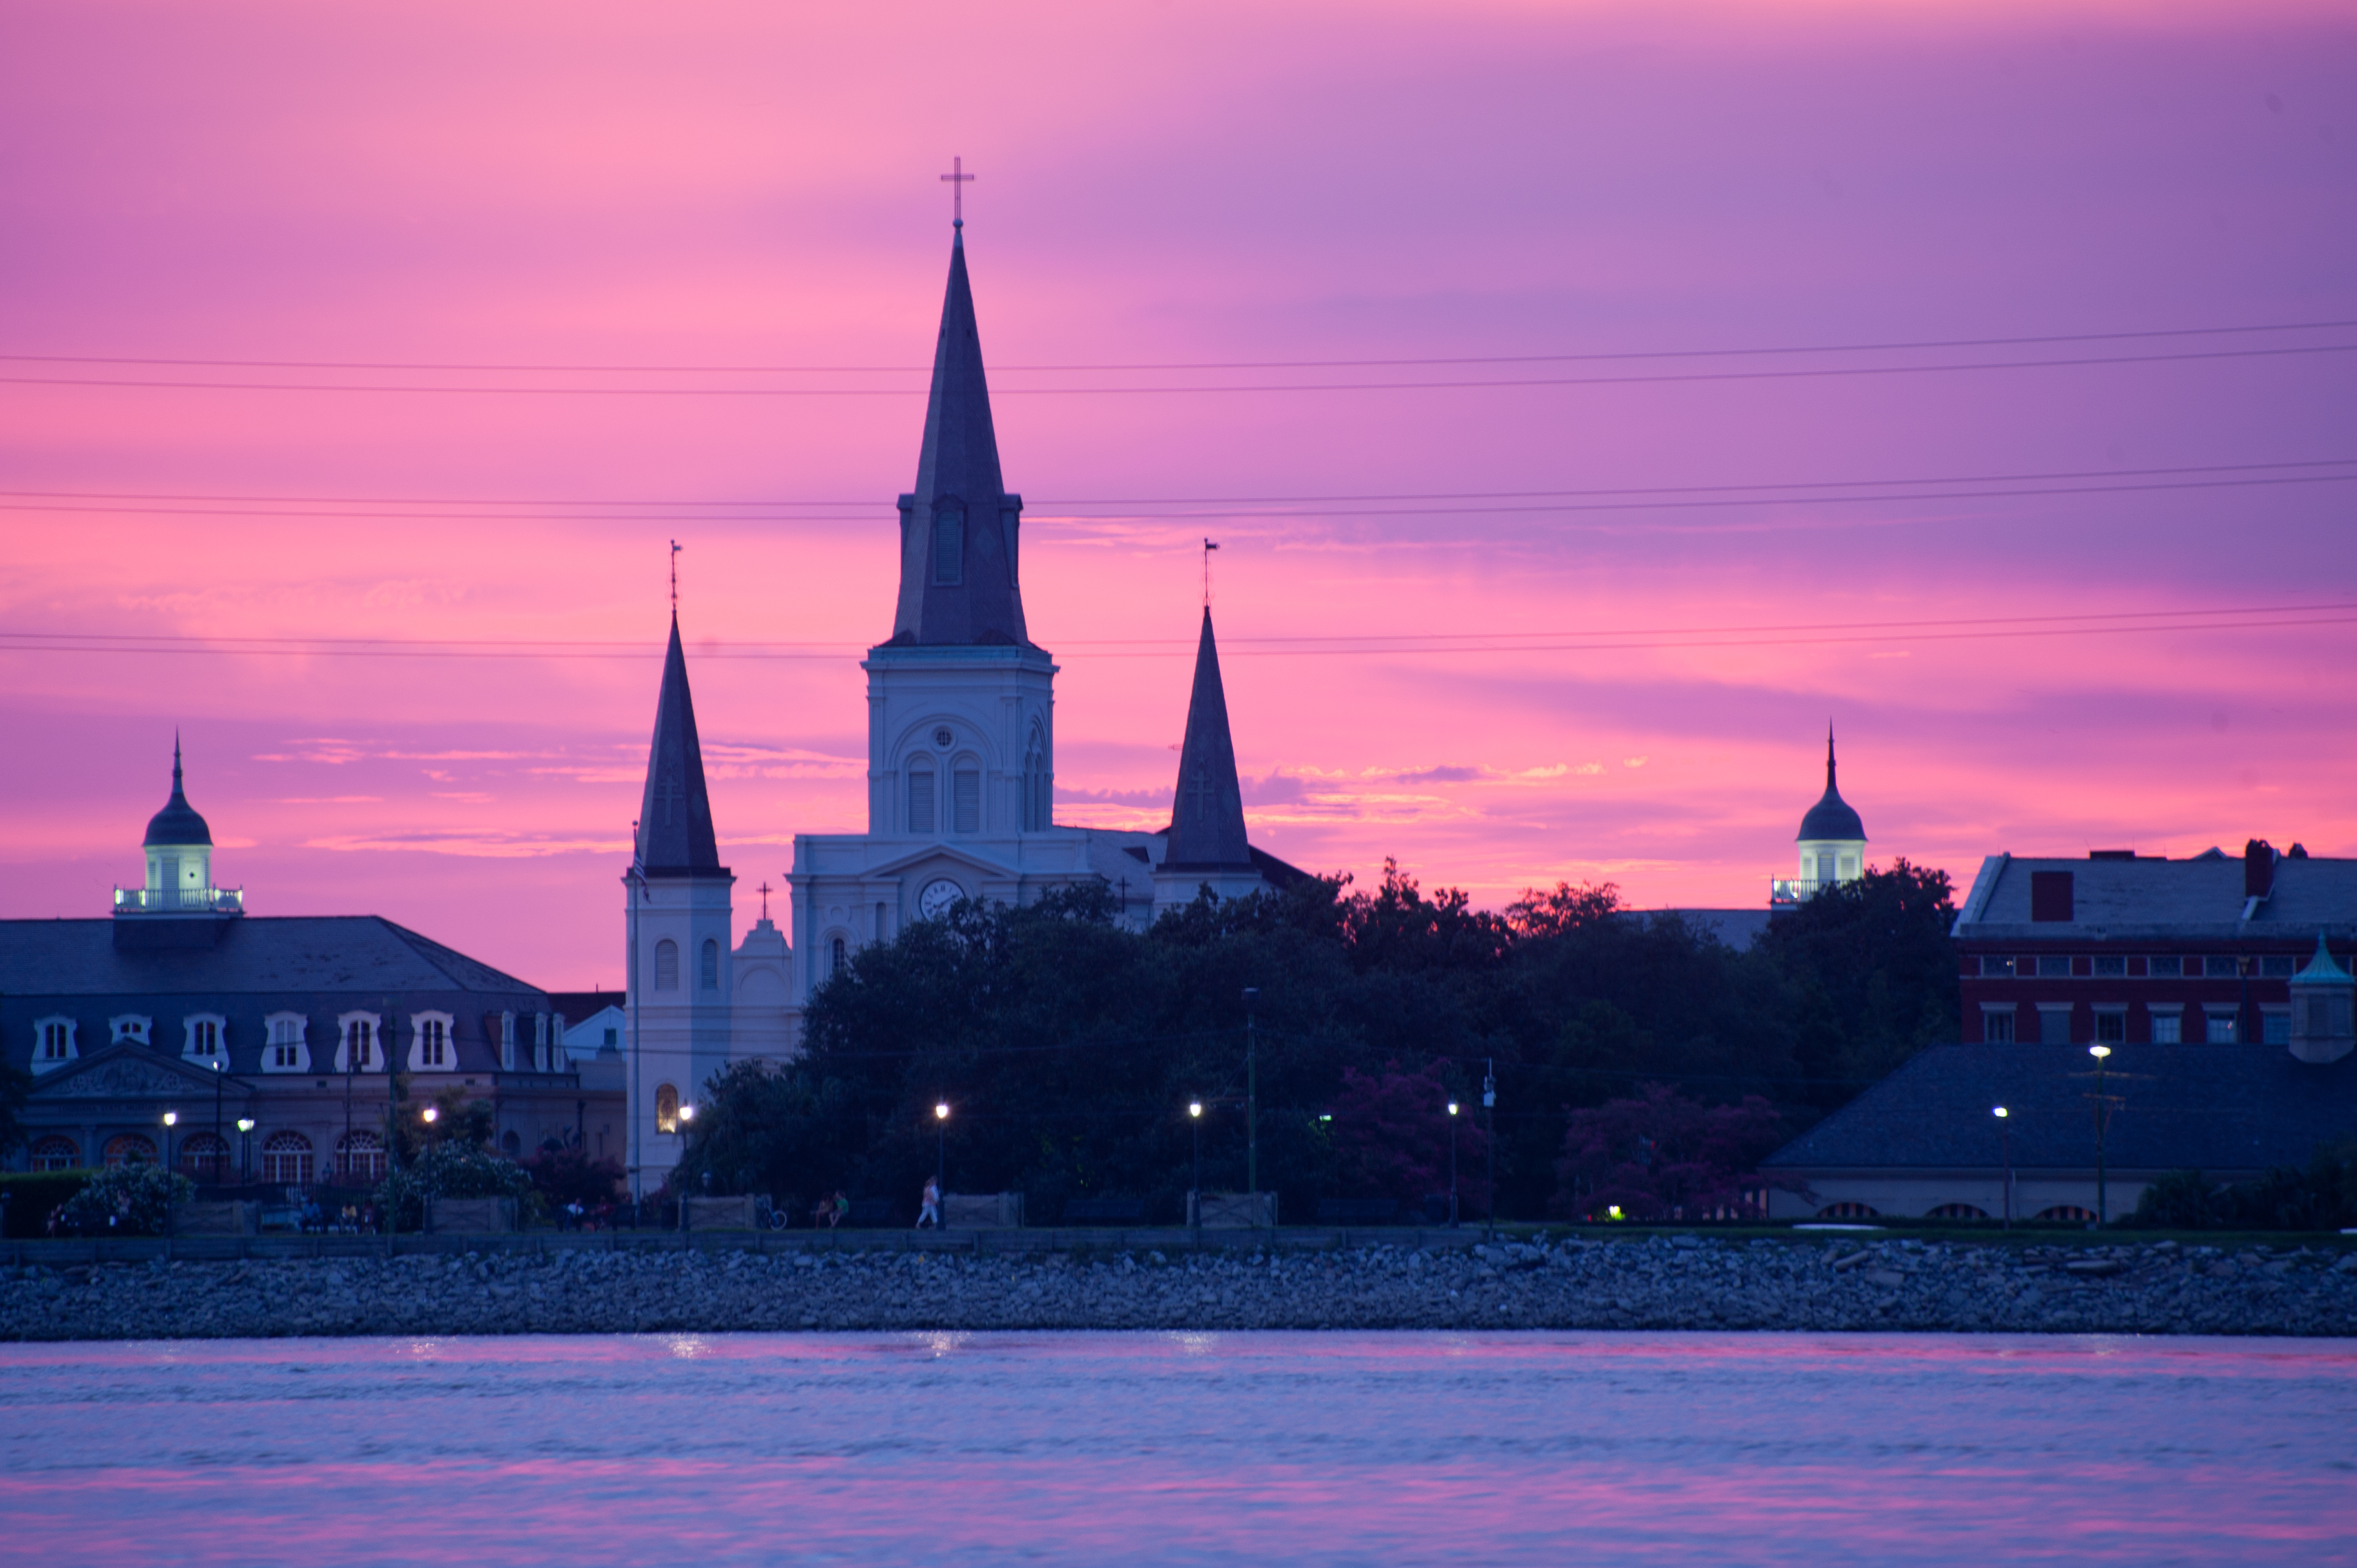 The sunsets in New Orleans are extraordinary over the Mississippi River